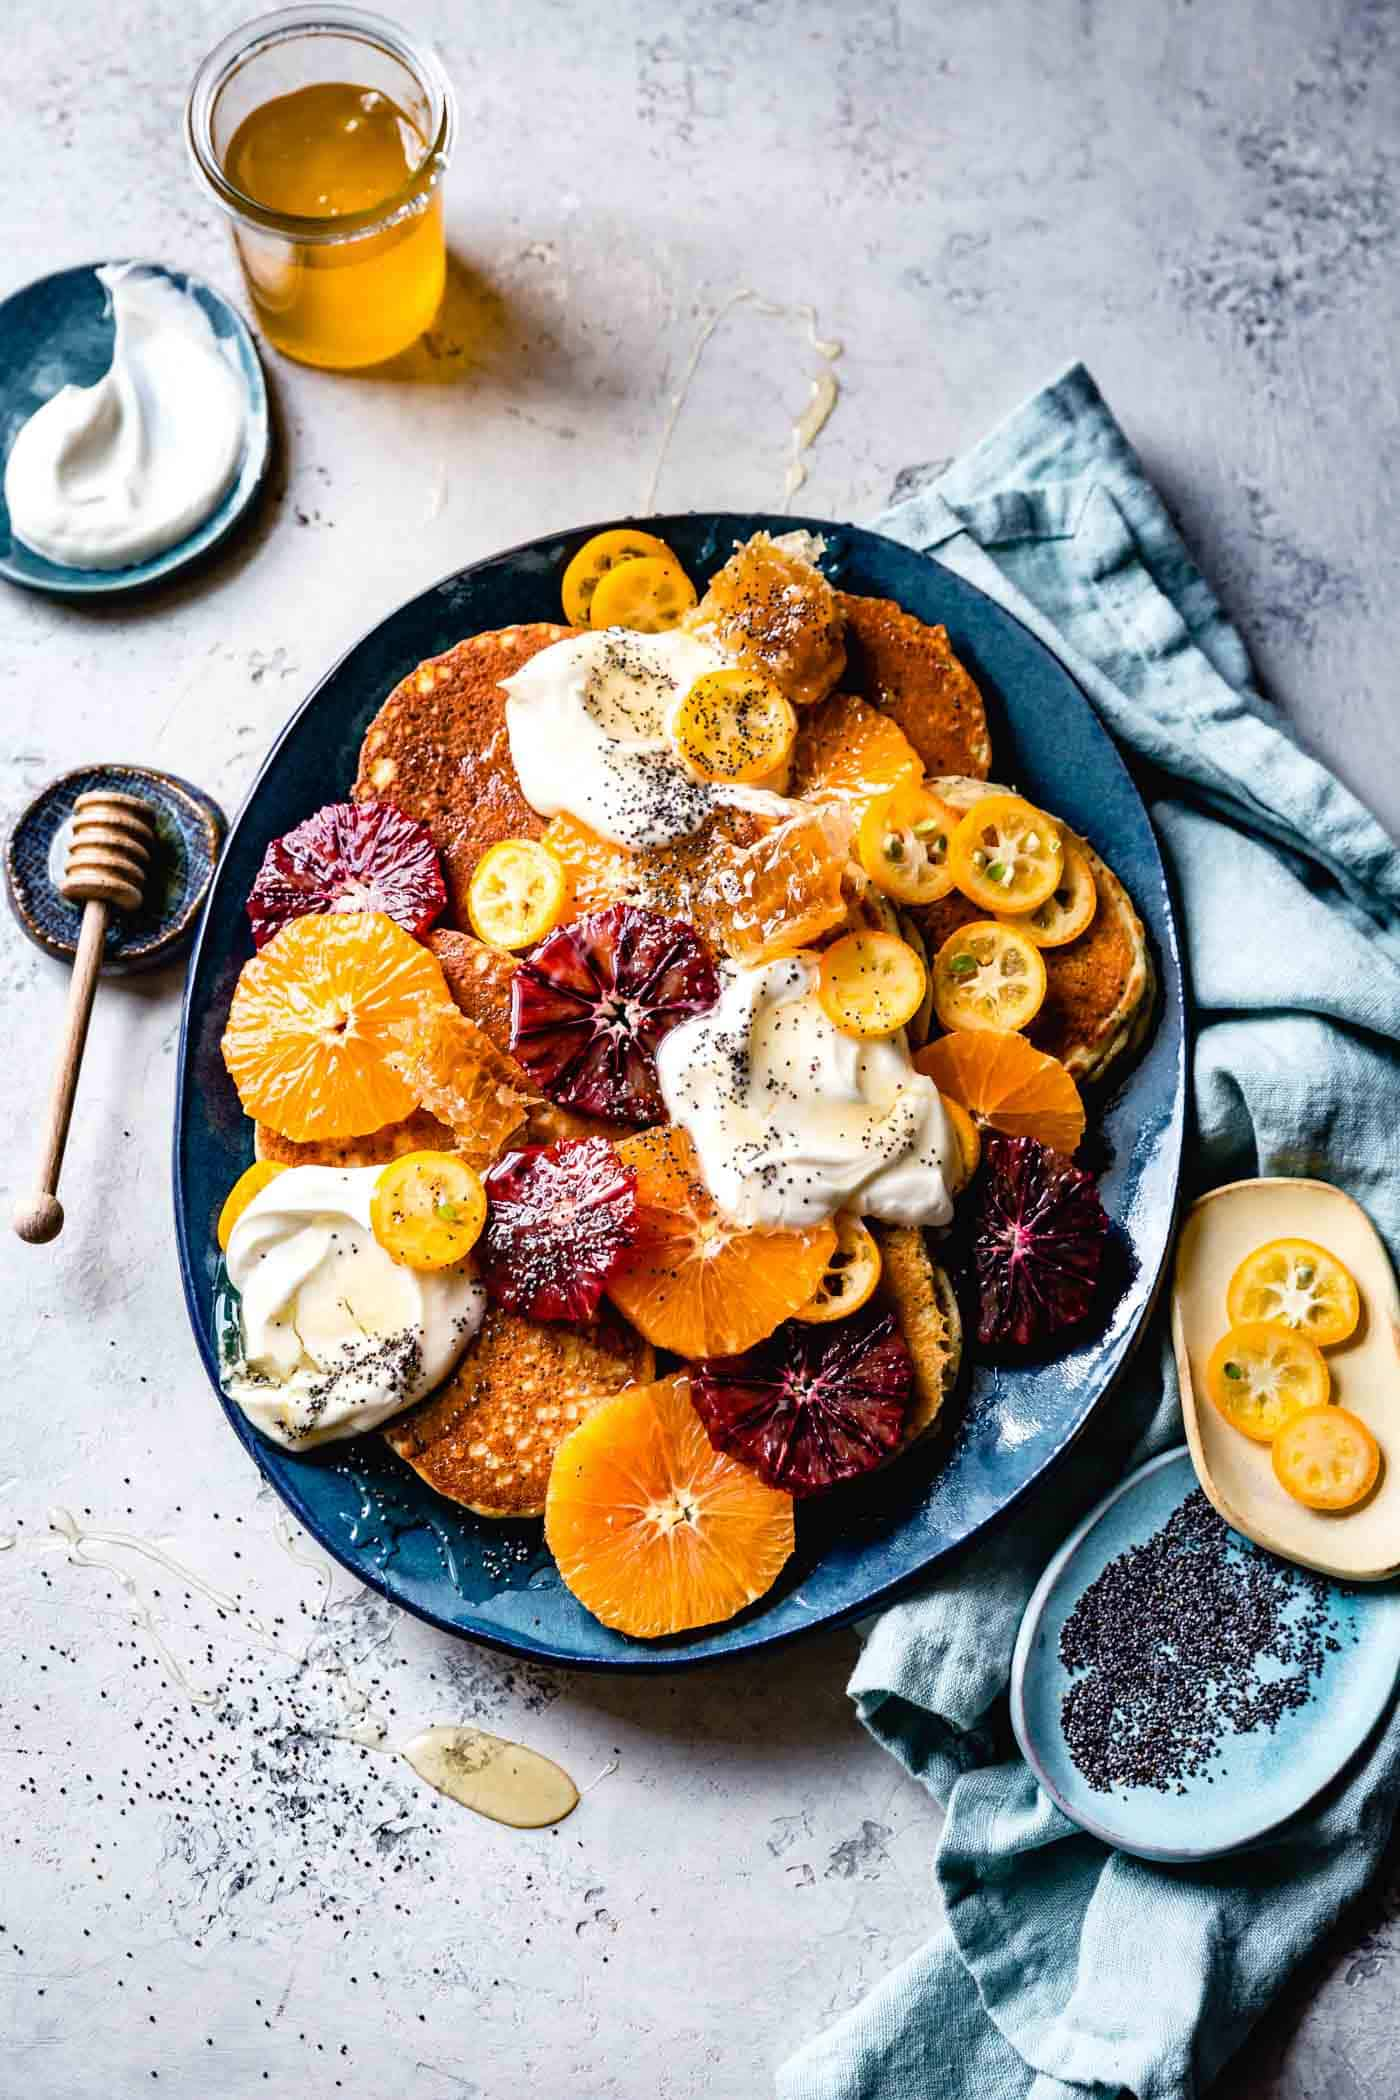 Platter of gluten-free almond flour pancakes with yogurt, citrus, honey, and poppy seeds